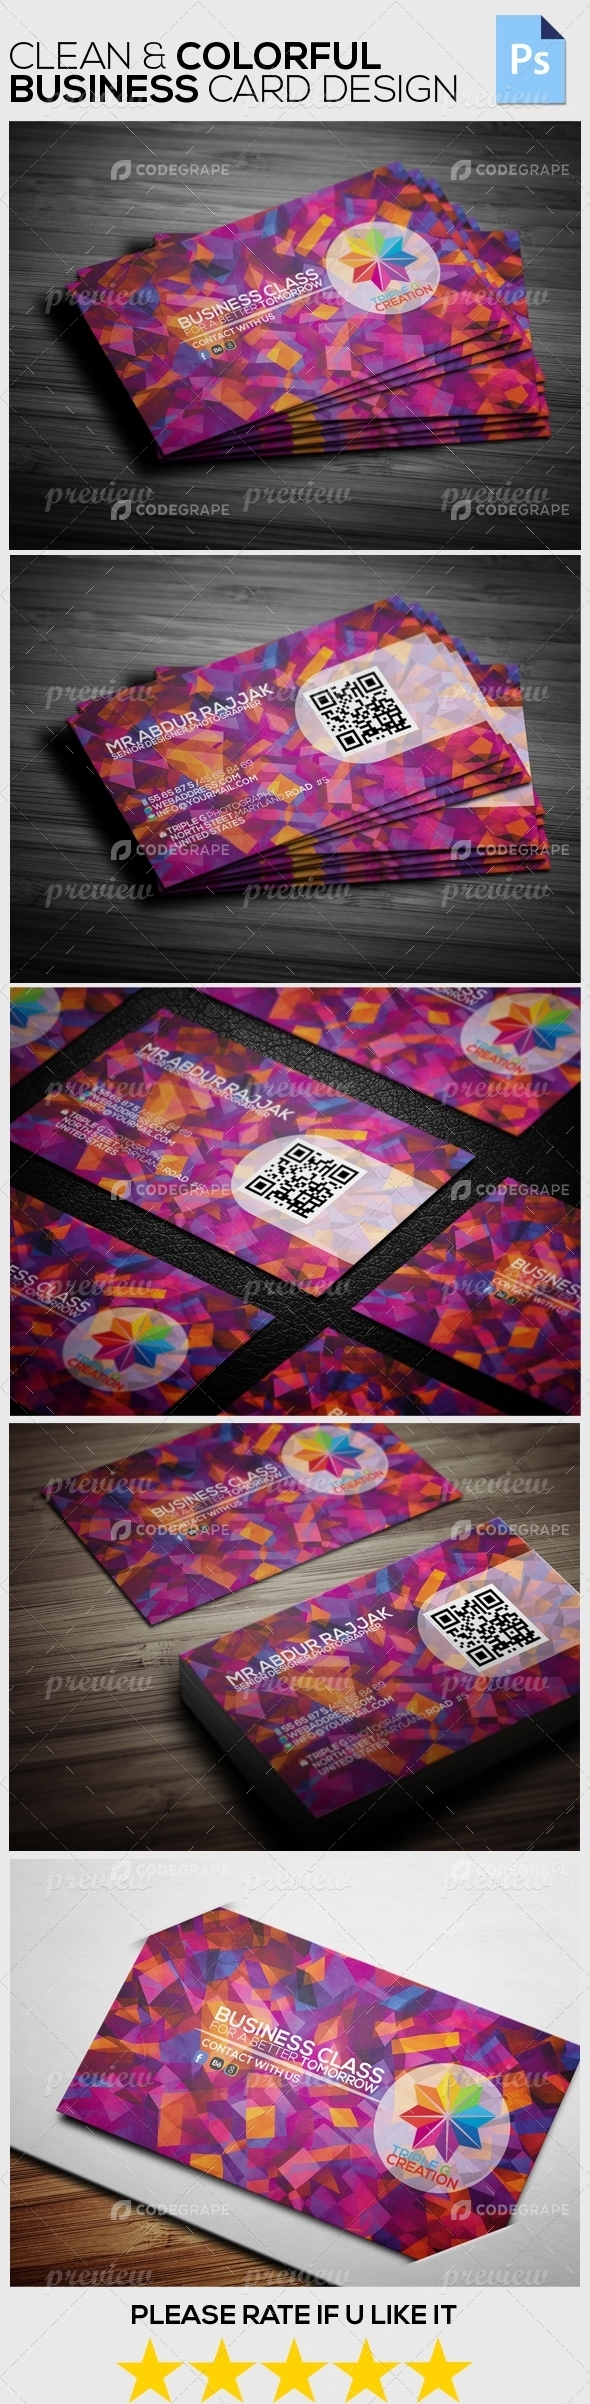 Clean & Colorful Business Card Design